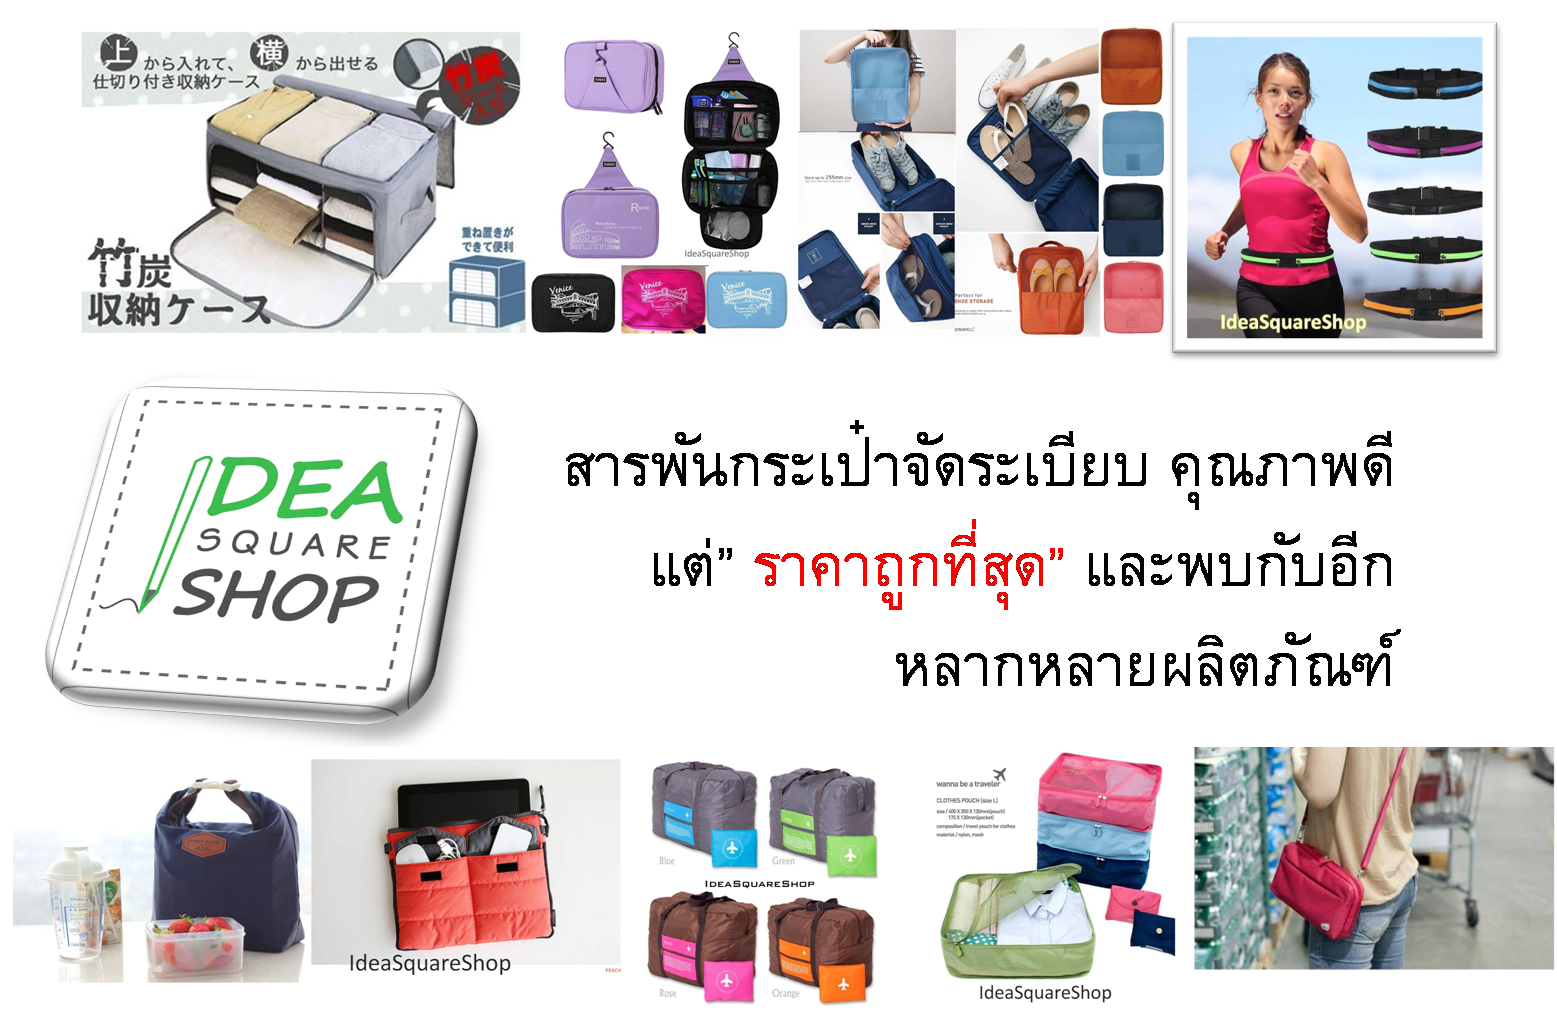 Ideasquareshop